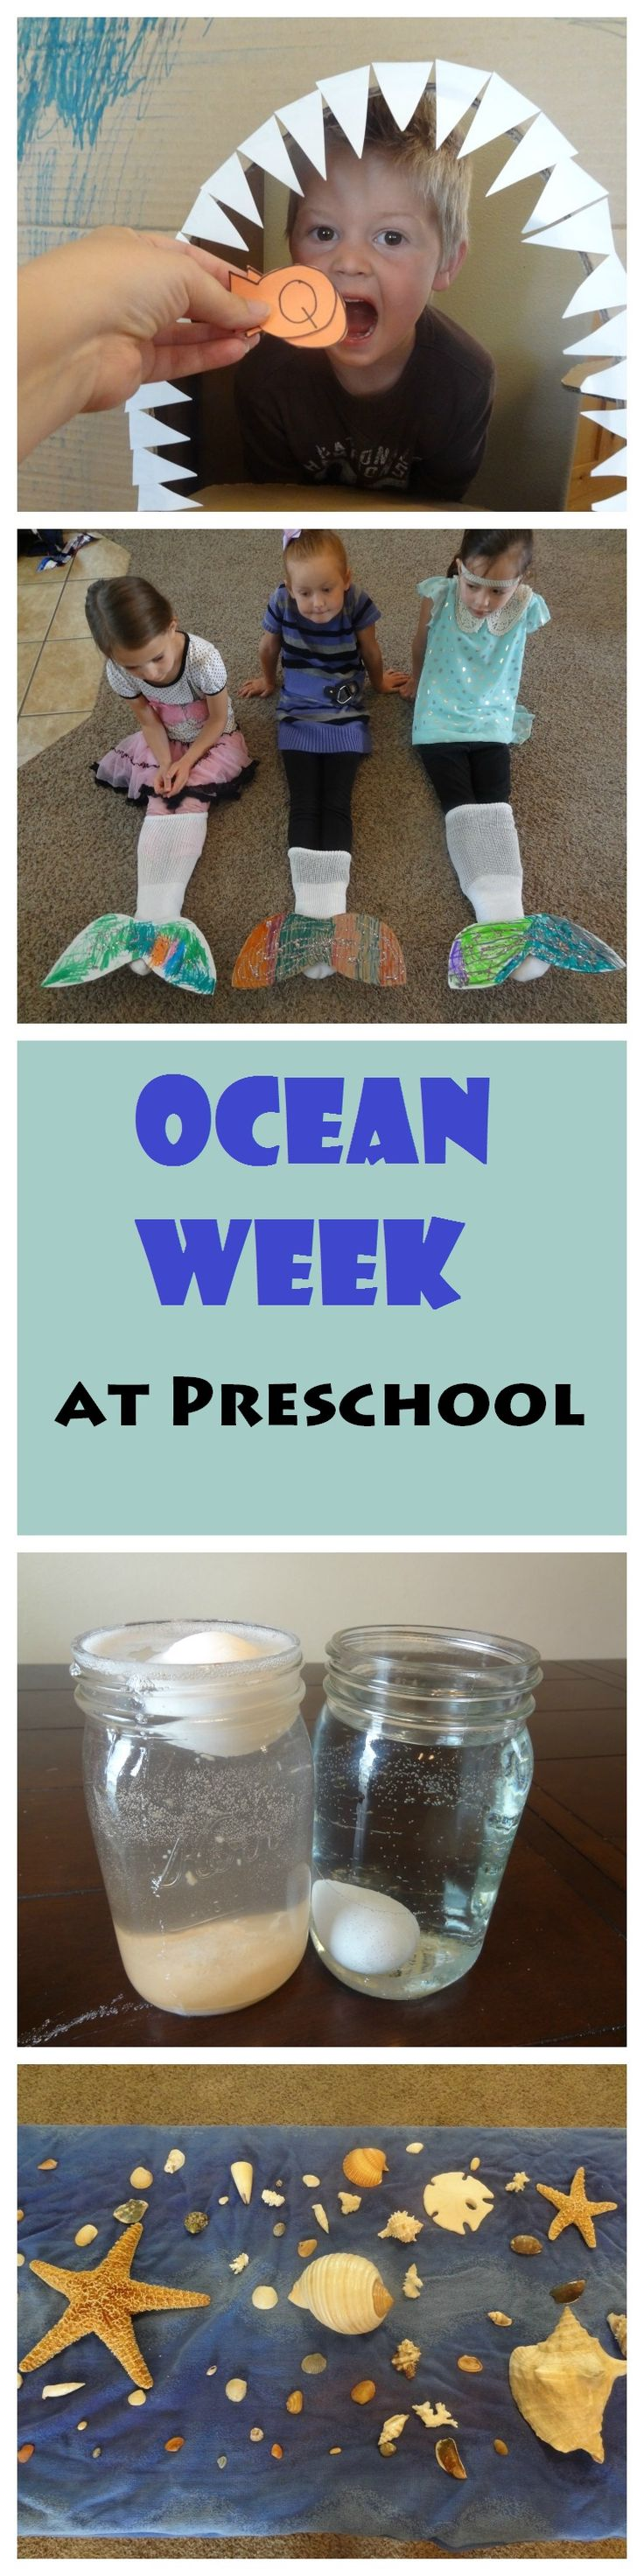 77 best Home Taught images on Pinterest | For kids, Activities and ...